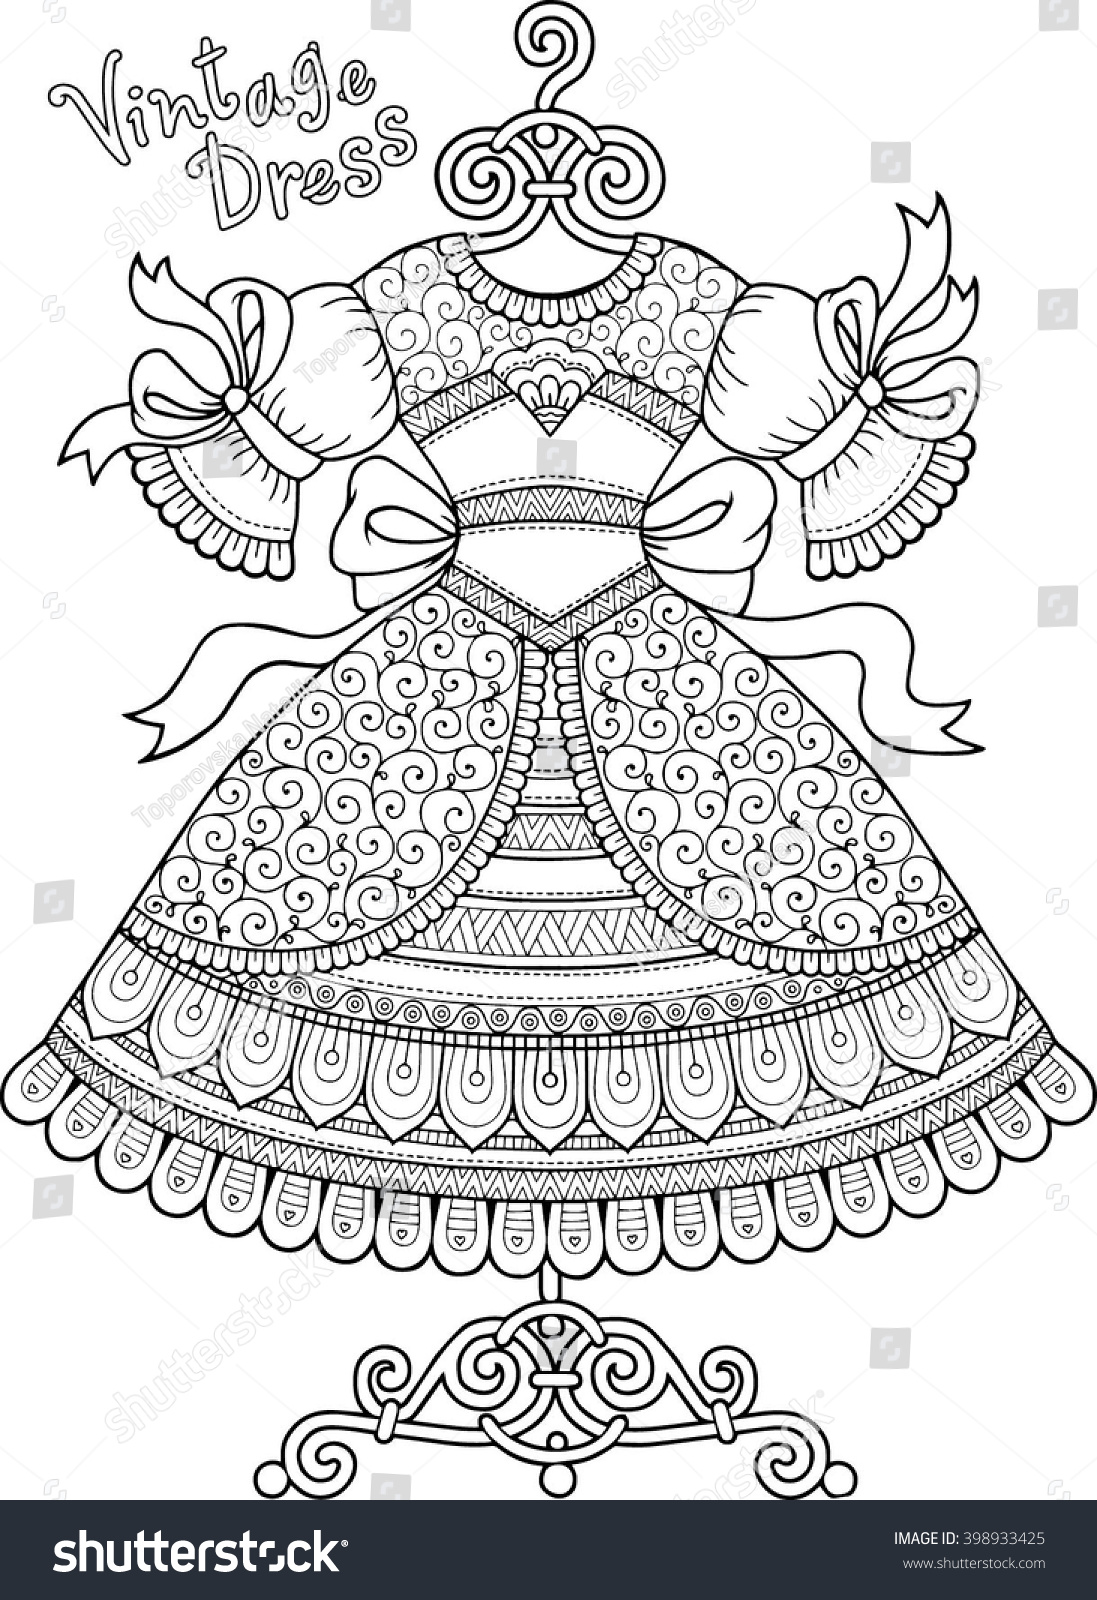 Anti stress colouring book asda - Anti Stress Vector Coloring Book For Adult Vintage Dress